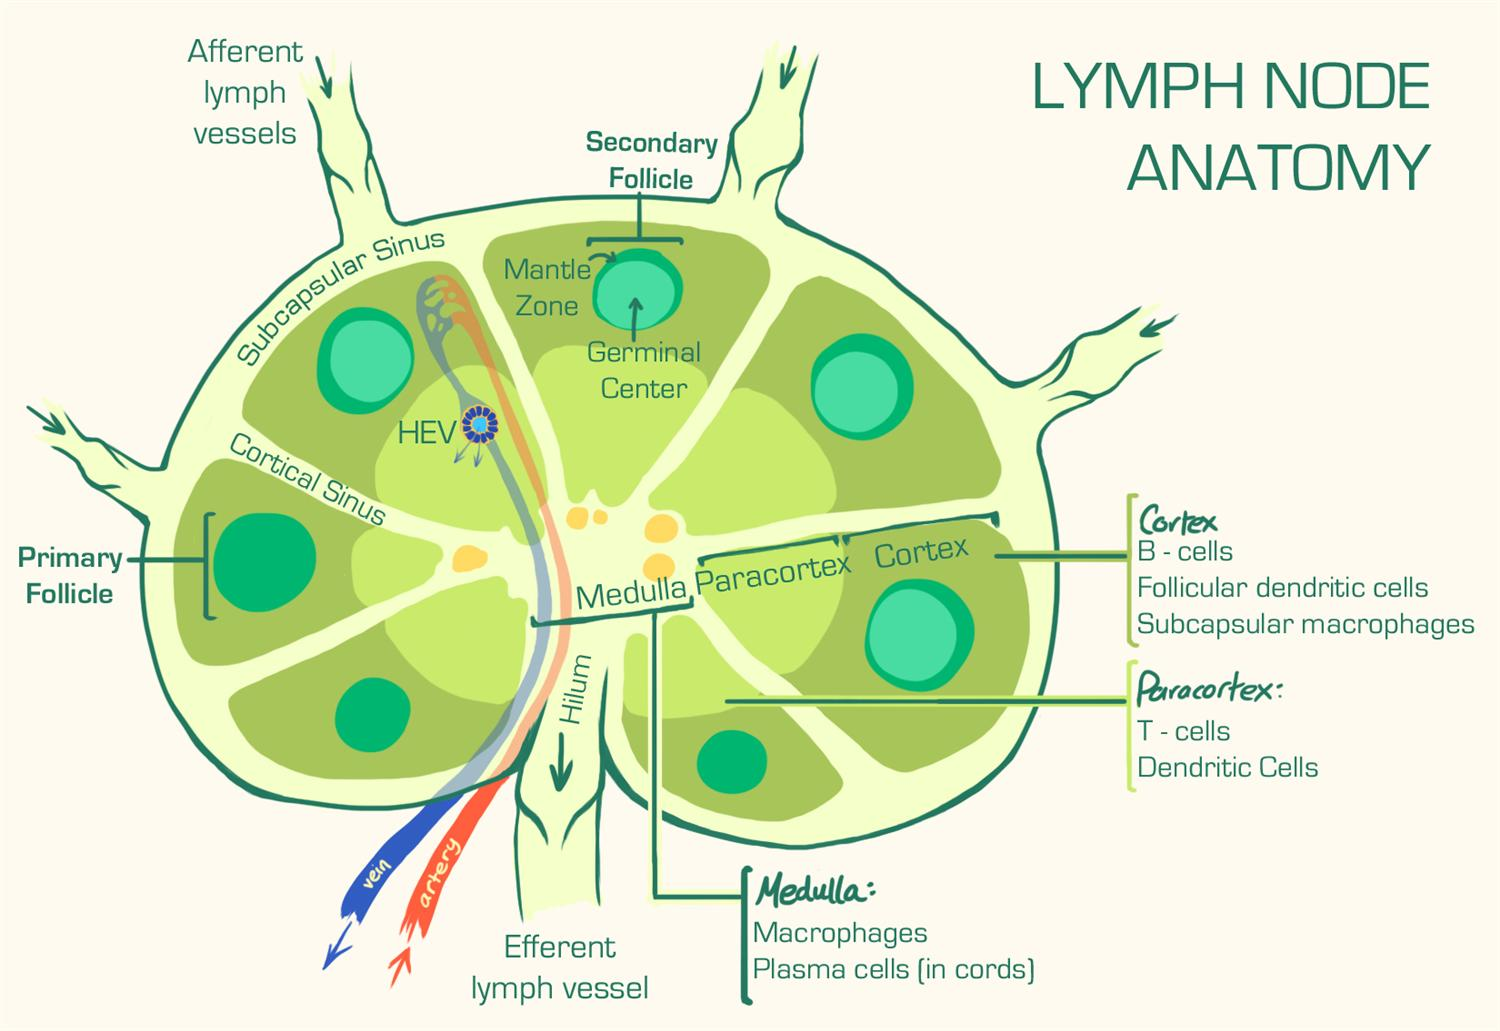 Secondary Lymphoid Tissue Immunology Medbullets Step 1